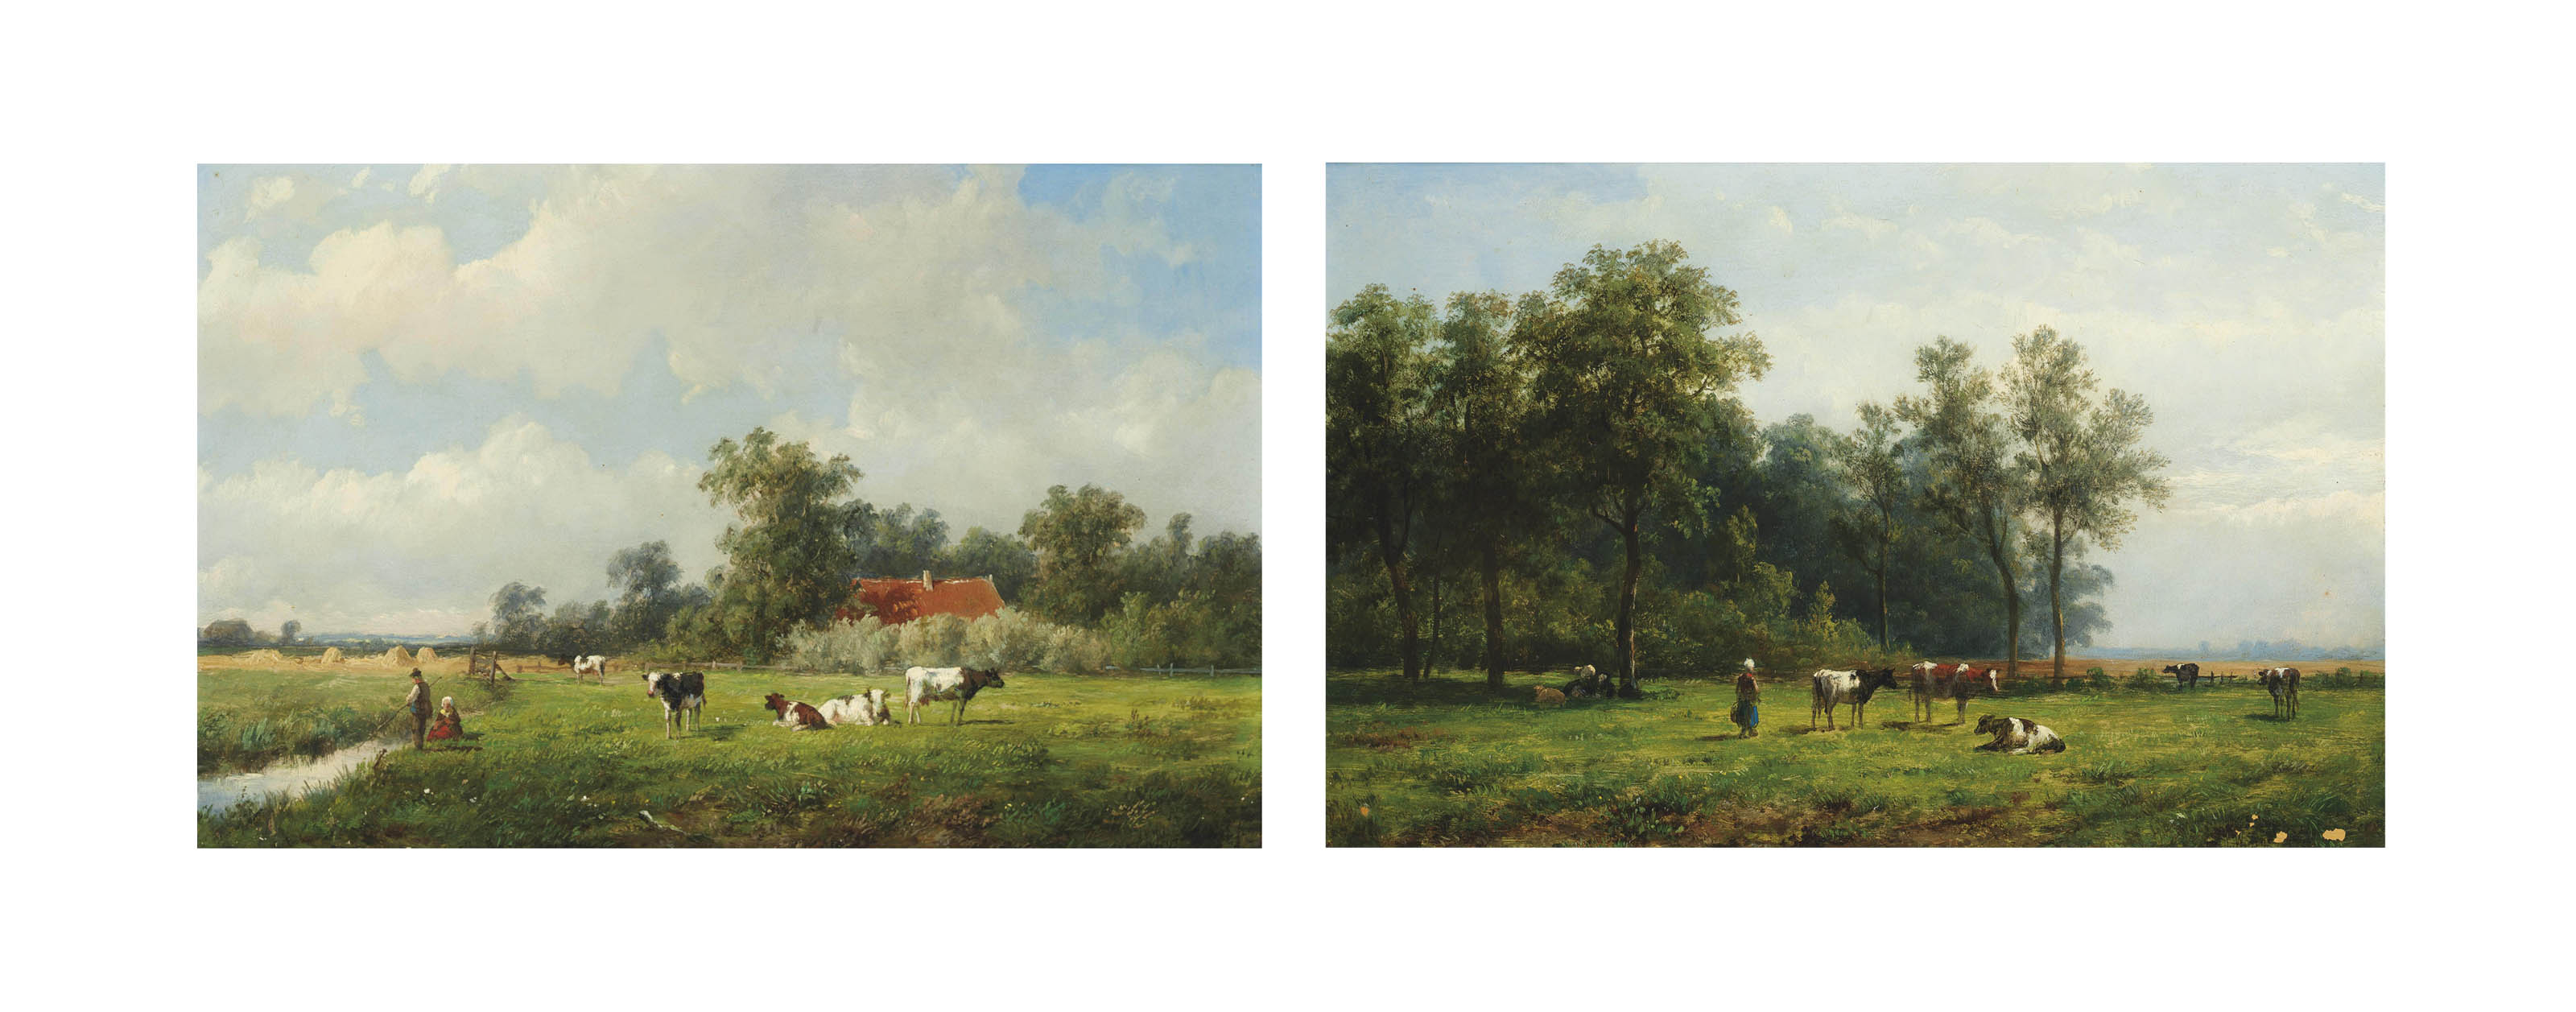 Fishing in a dyke; and Tending to cattle in a pastoral landscape